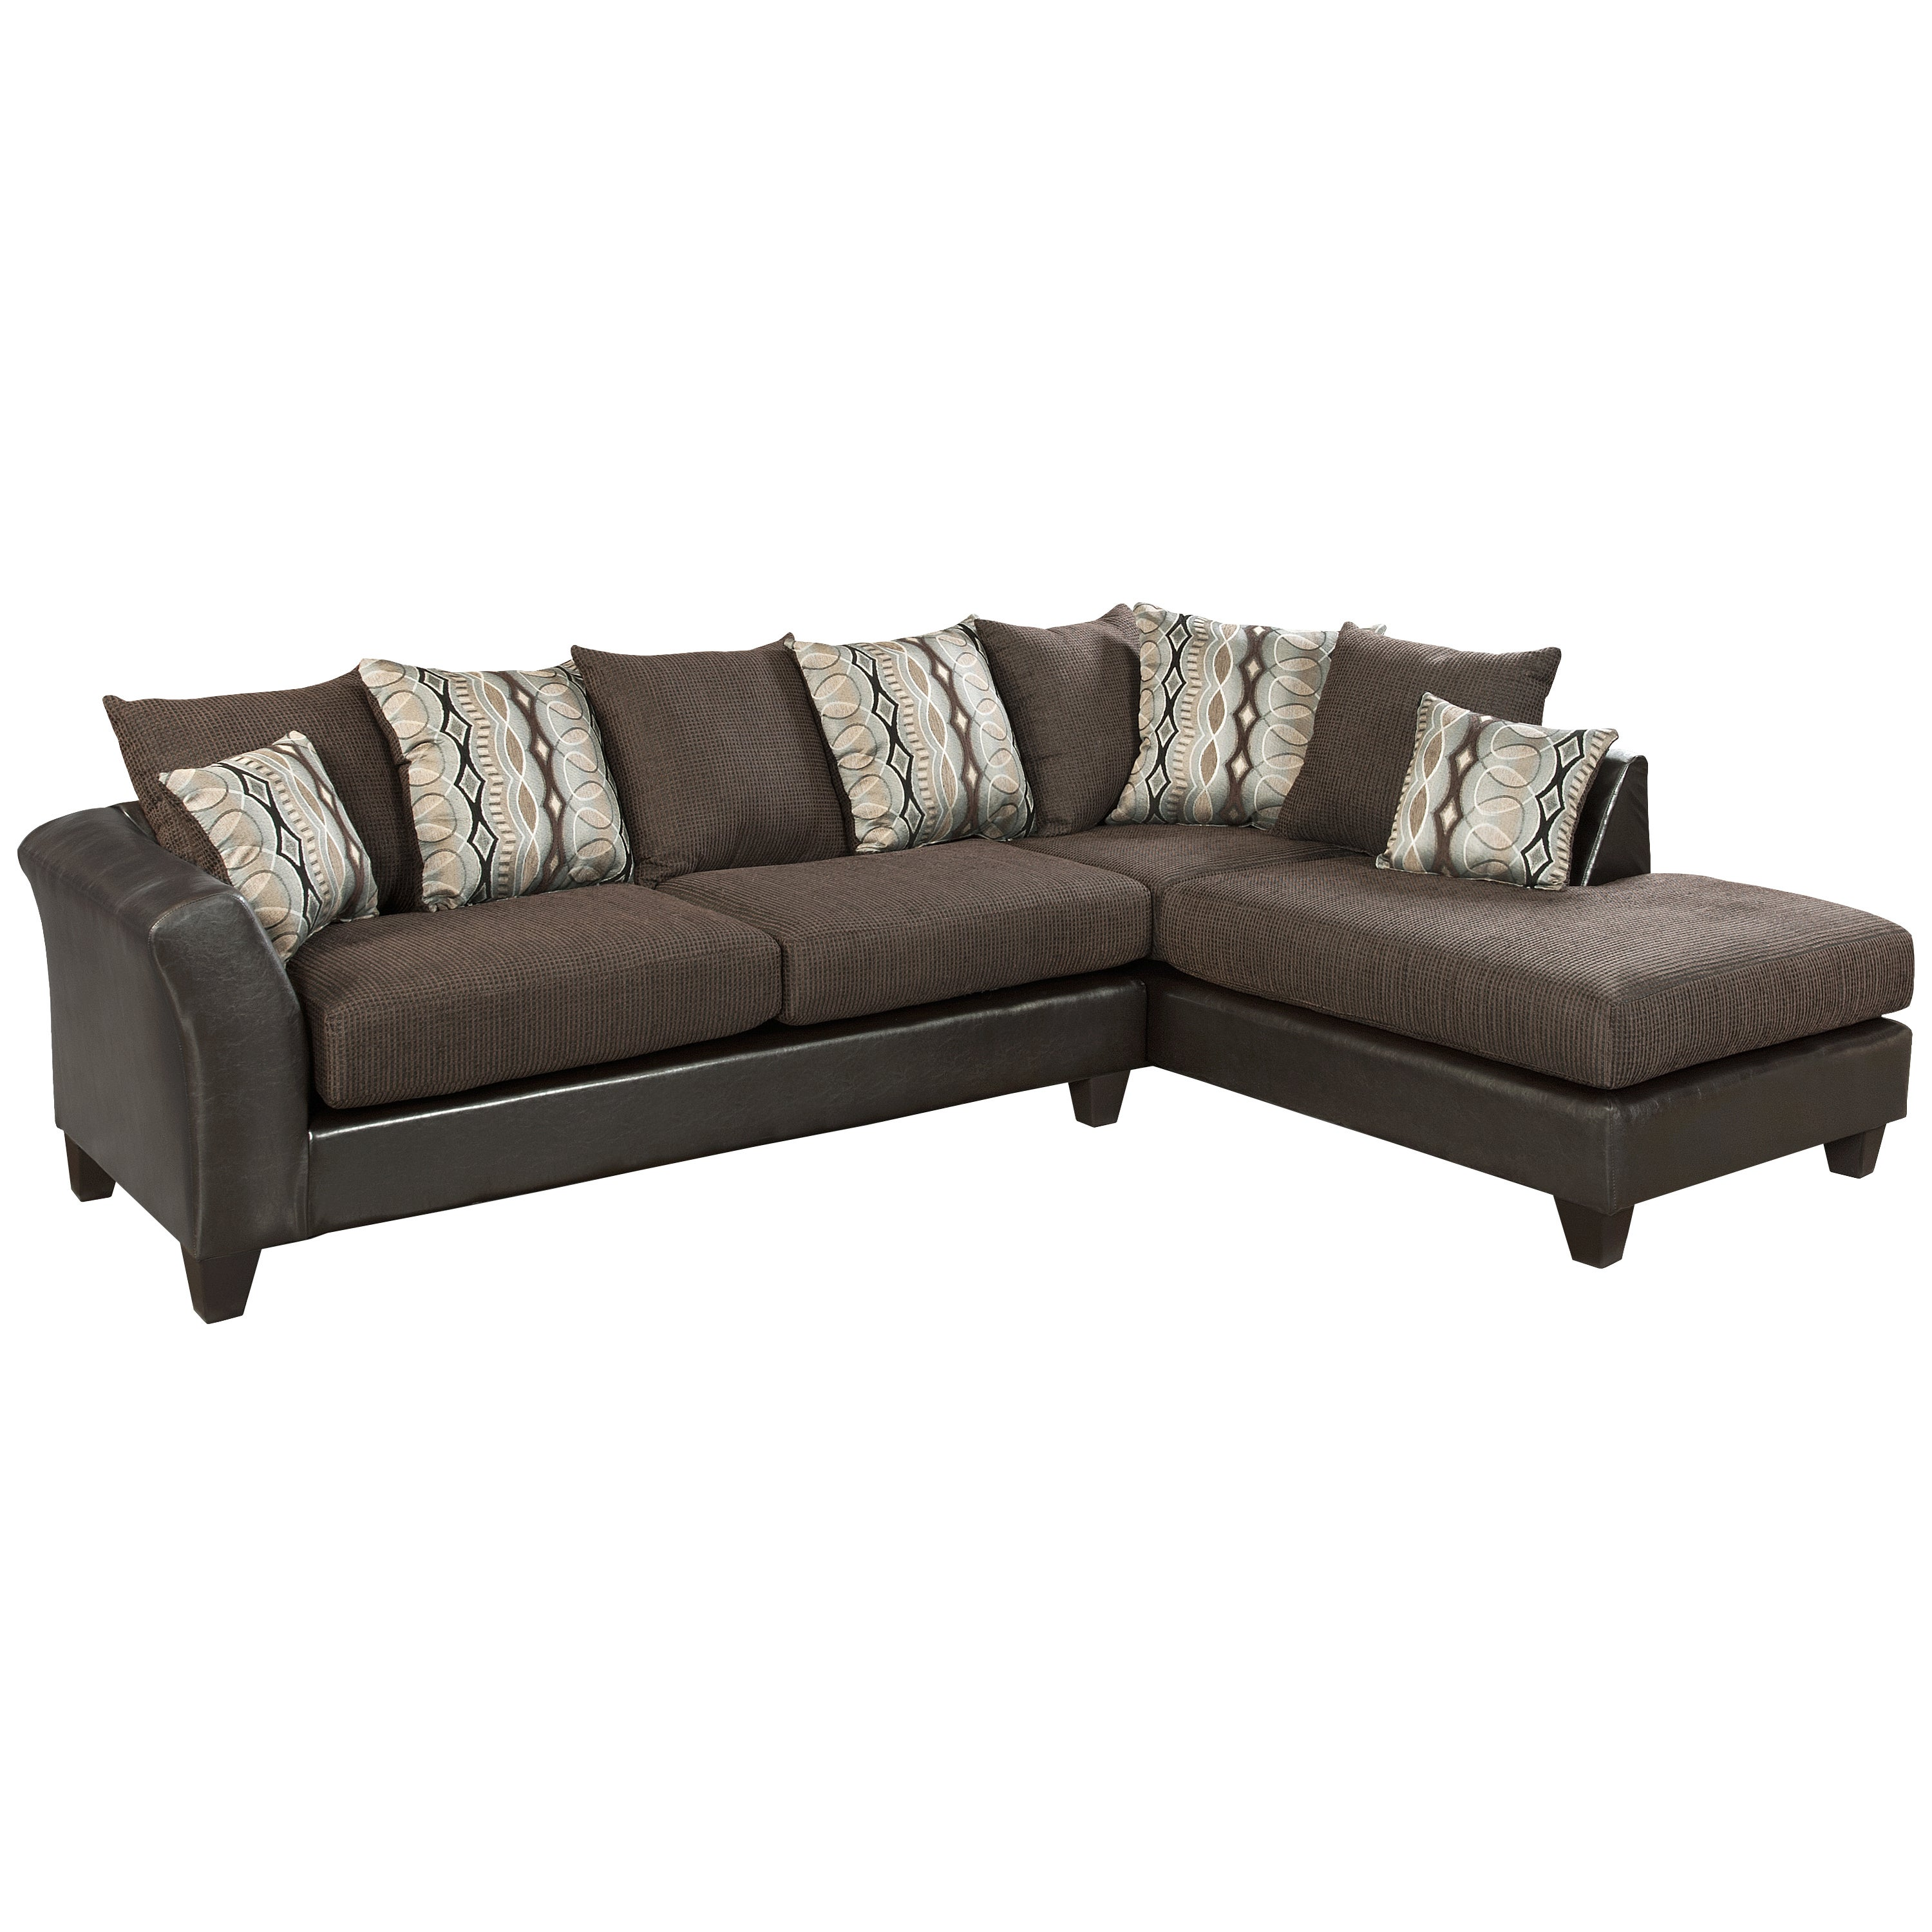 FLASH Furniture Riverstone Rip Sable Chenille Sectional (...